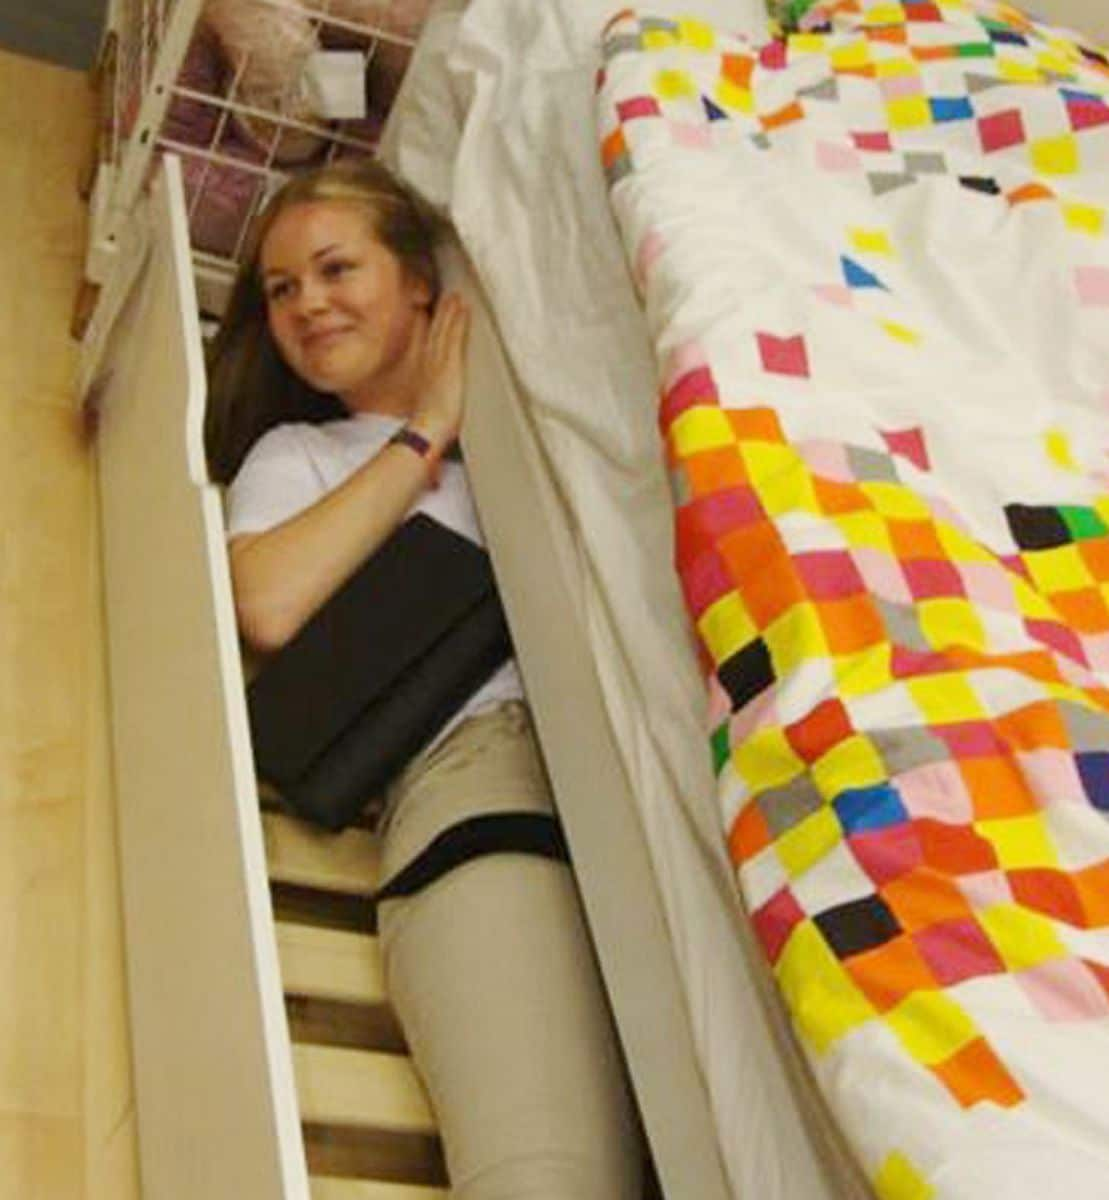 Police Guard Glasgow Ikea From 3,000 People Trying To Play Hide And Seek In Store